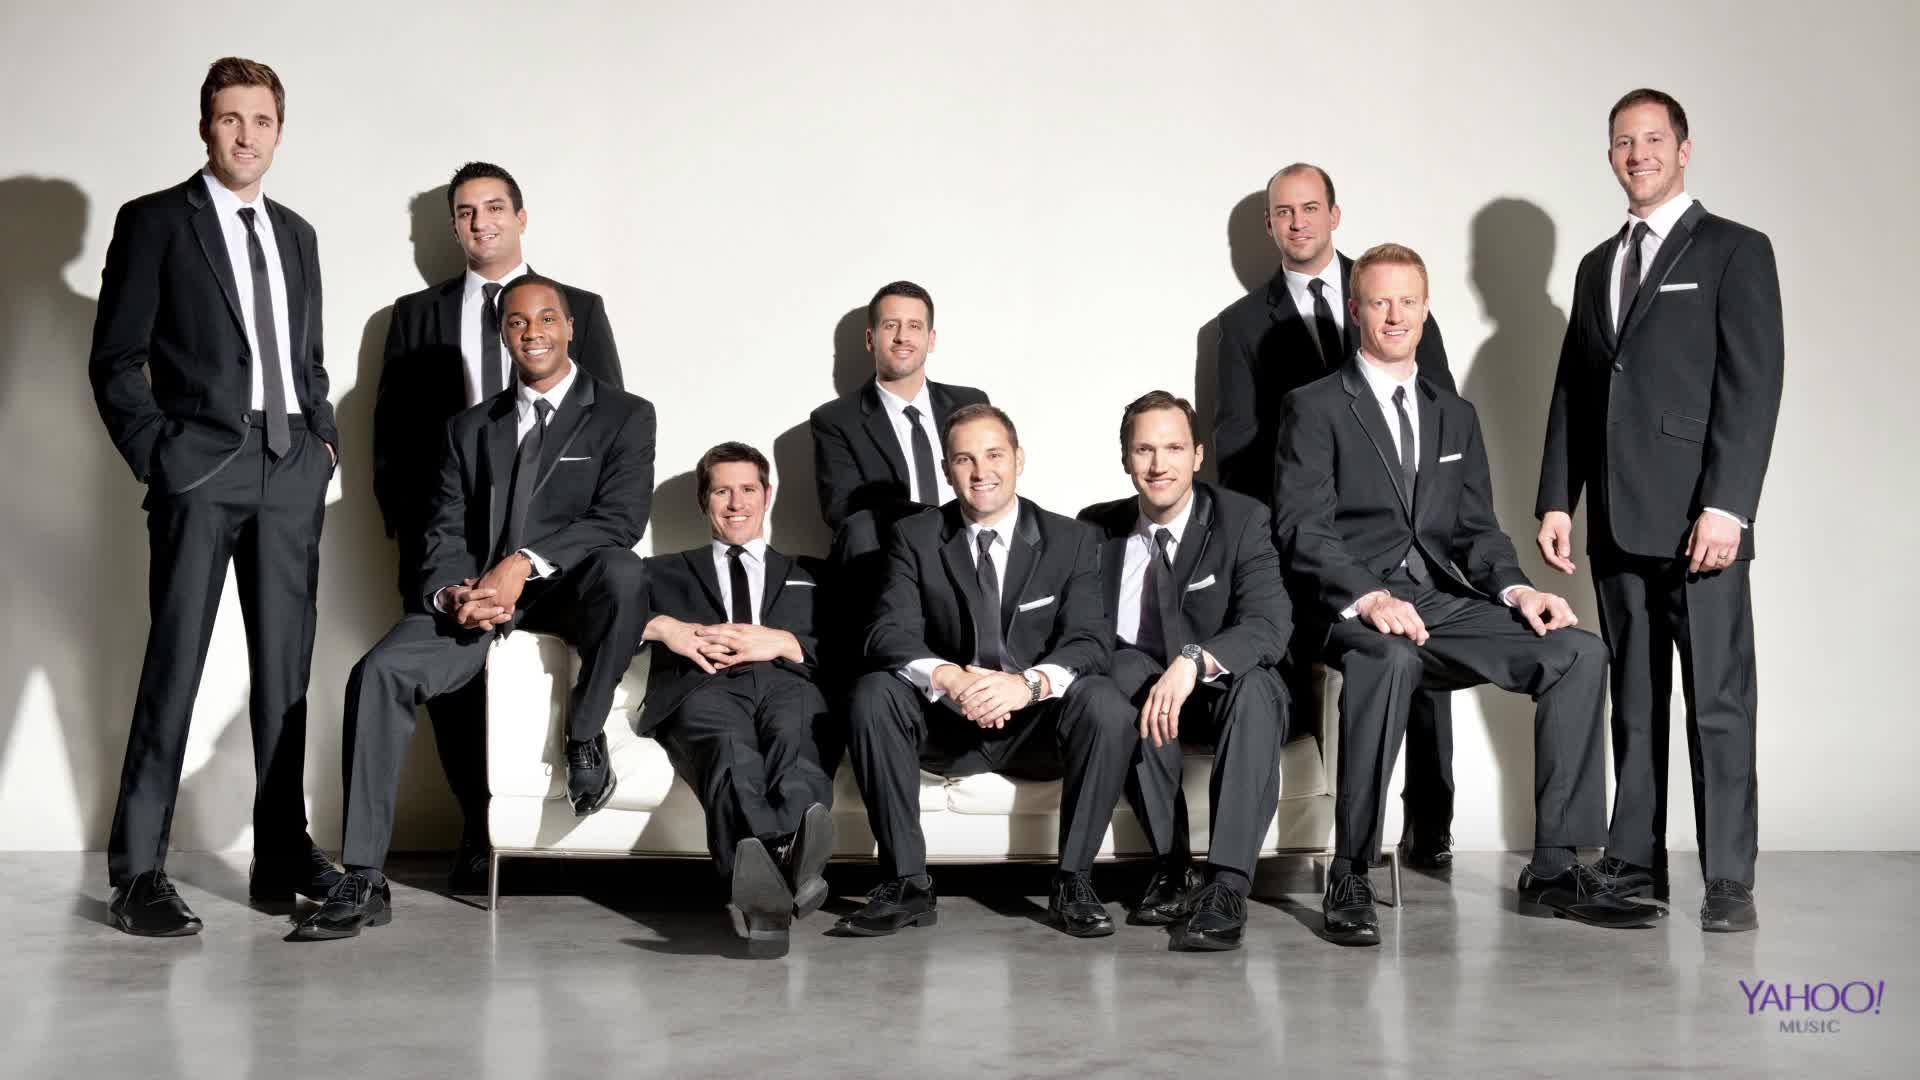 Stream Straight No Chaser on Yahoo Live: Tonight, 5 p.m. PT!